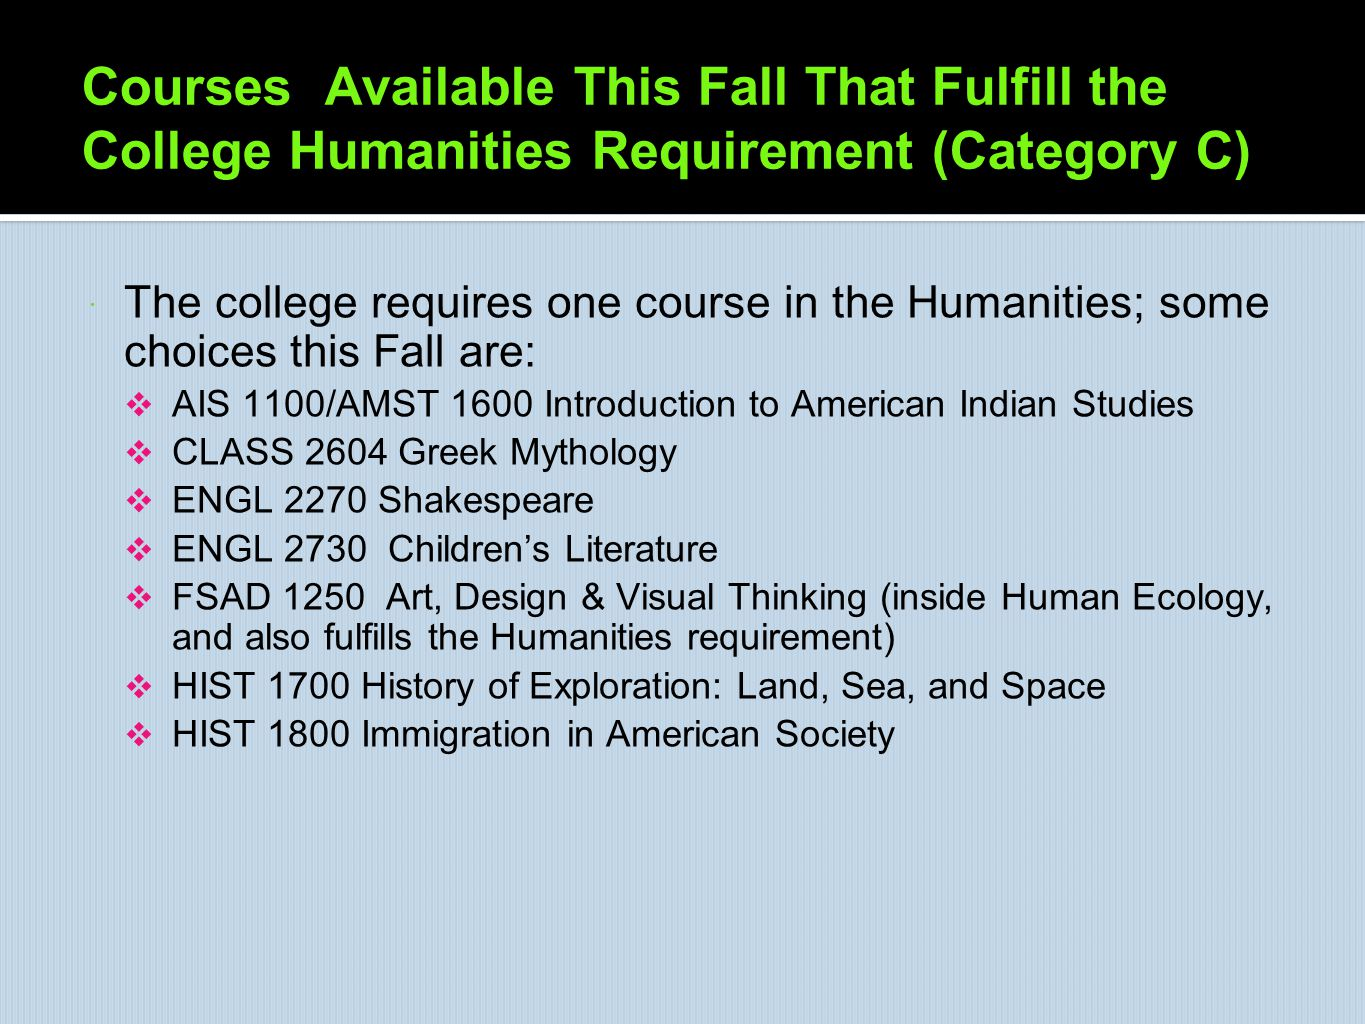 Courses Available This Fall That Fulfill the College Humanities Requirement (Category C)